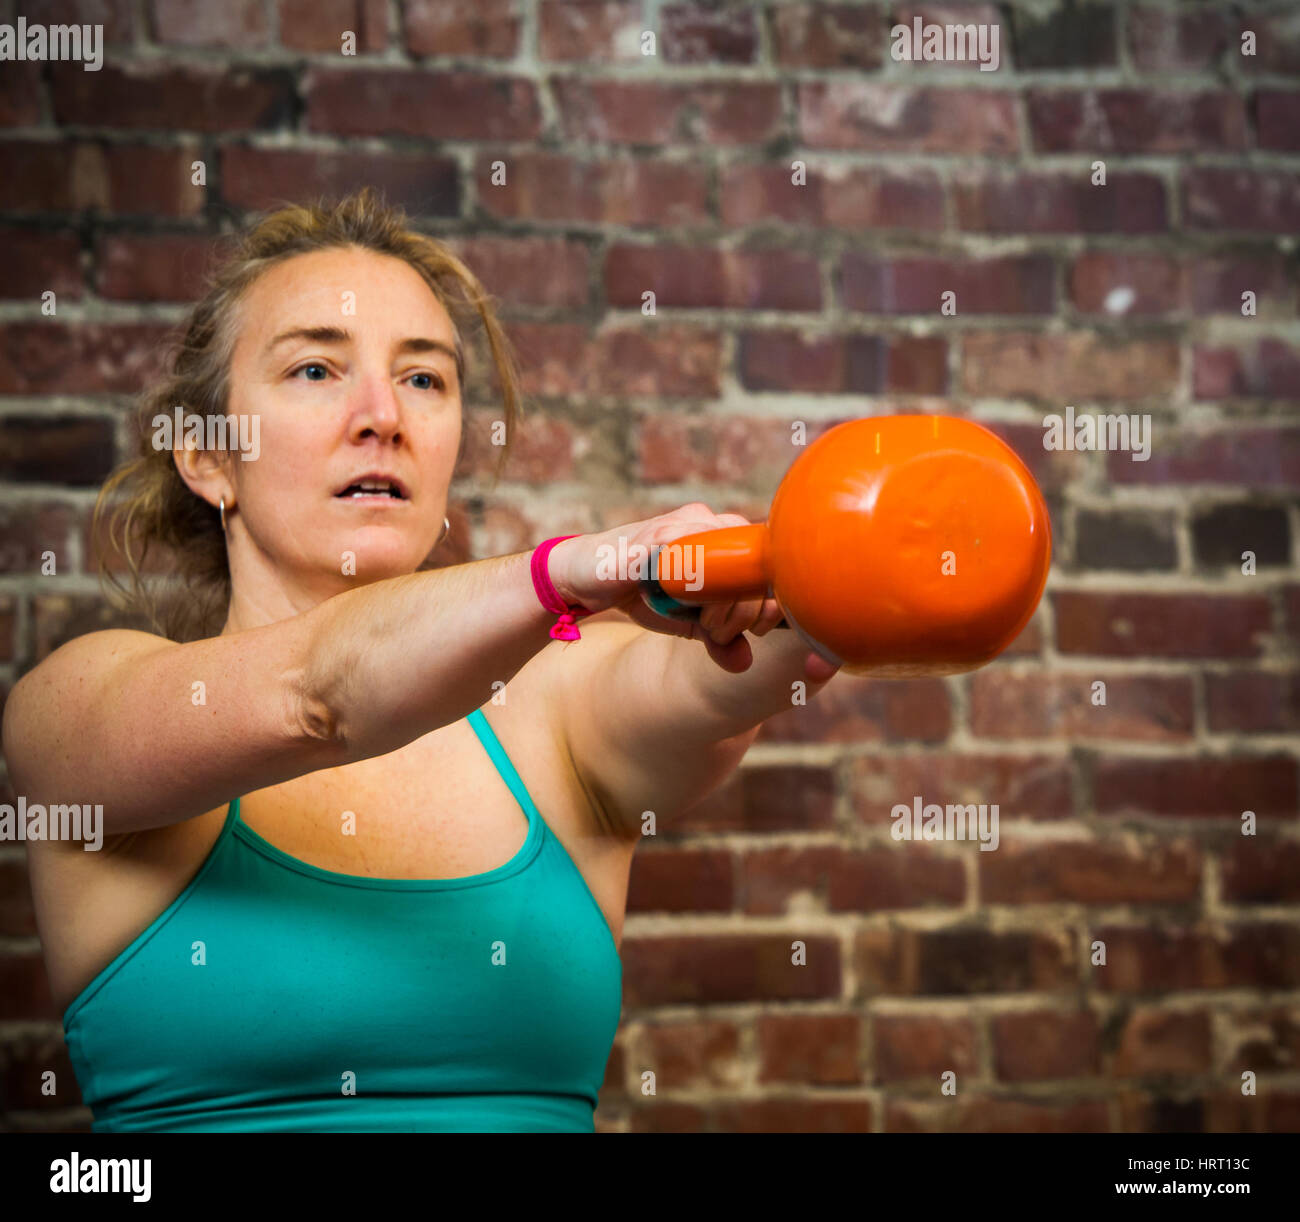 A woman in her early 40's swinging a kettlebell while working out. - Stock Image